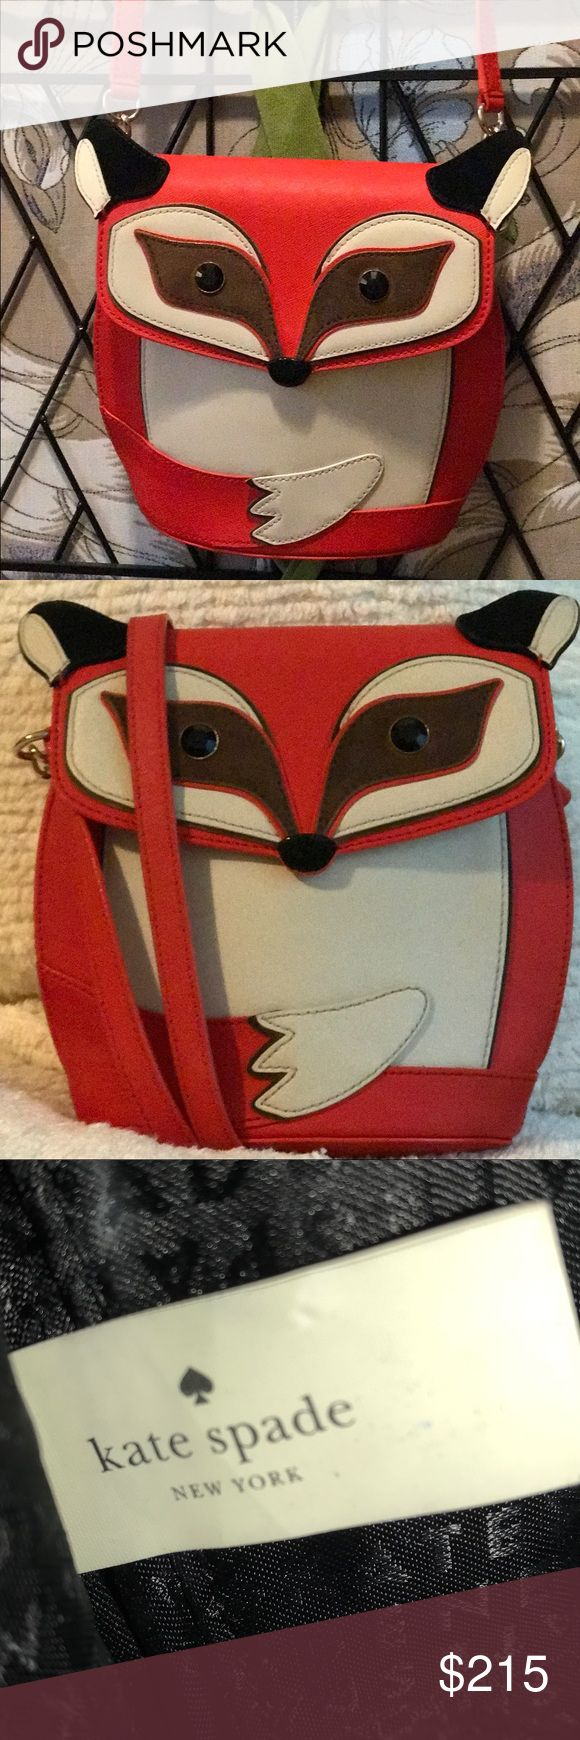 Kate Spade Fox Blaze Bag Kate Spade Blaze A Trail Fox Crossbody NWOT  Crosshatched leather with suede trim Capital Kate jacquard lining Gold foil printed Kate Spade New York Signature Crossbody with snap closure Interior slide pocket kate spade Bags Crossbody Bags